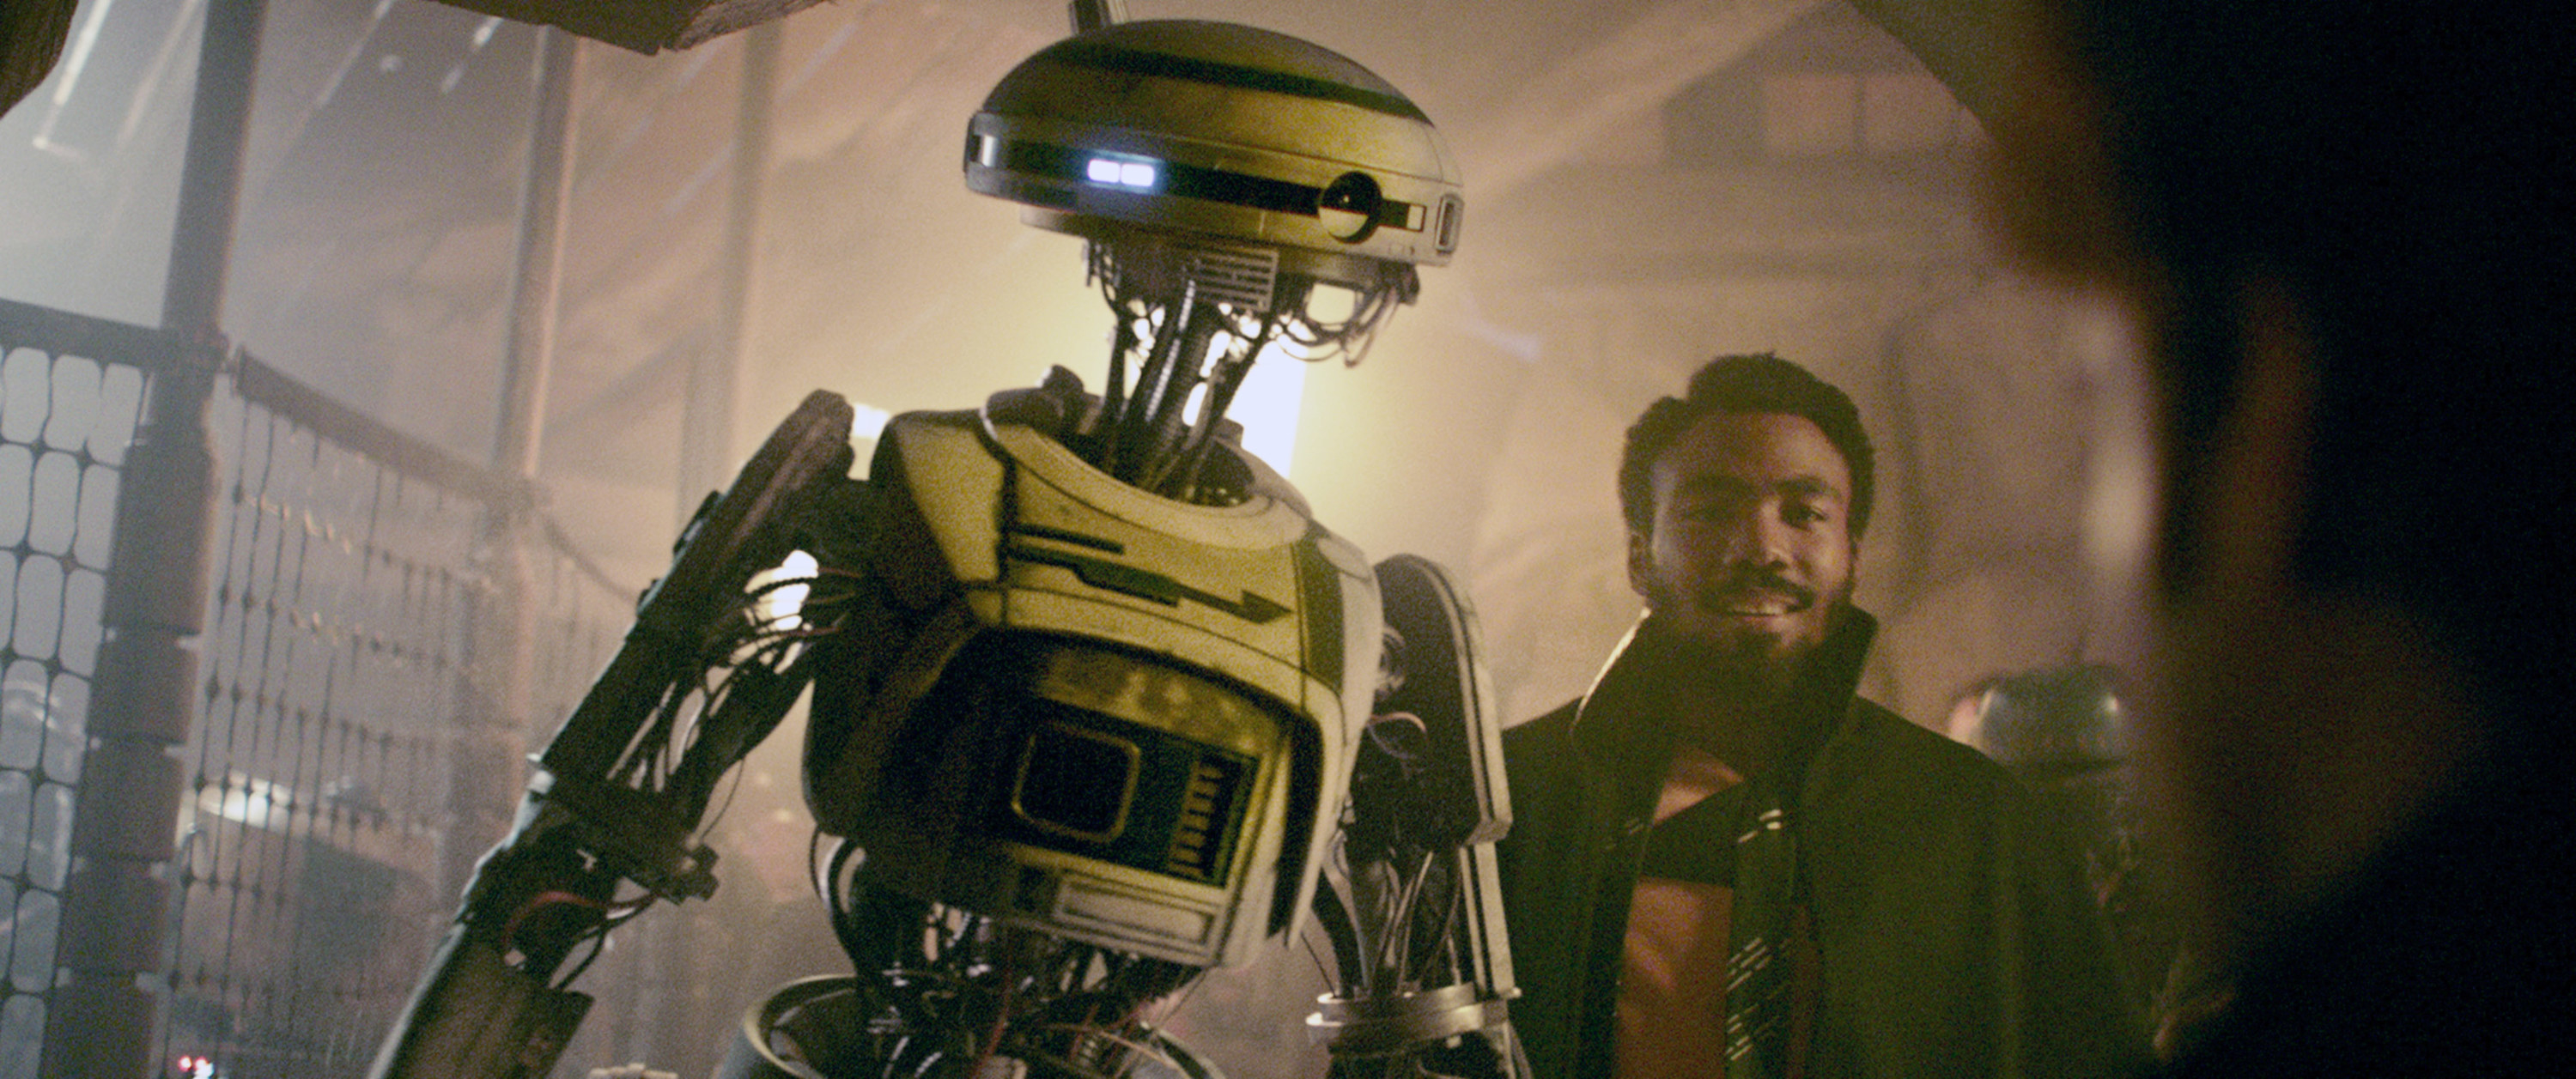 L3-37 standing next to Donald Glover in Solo